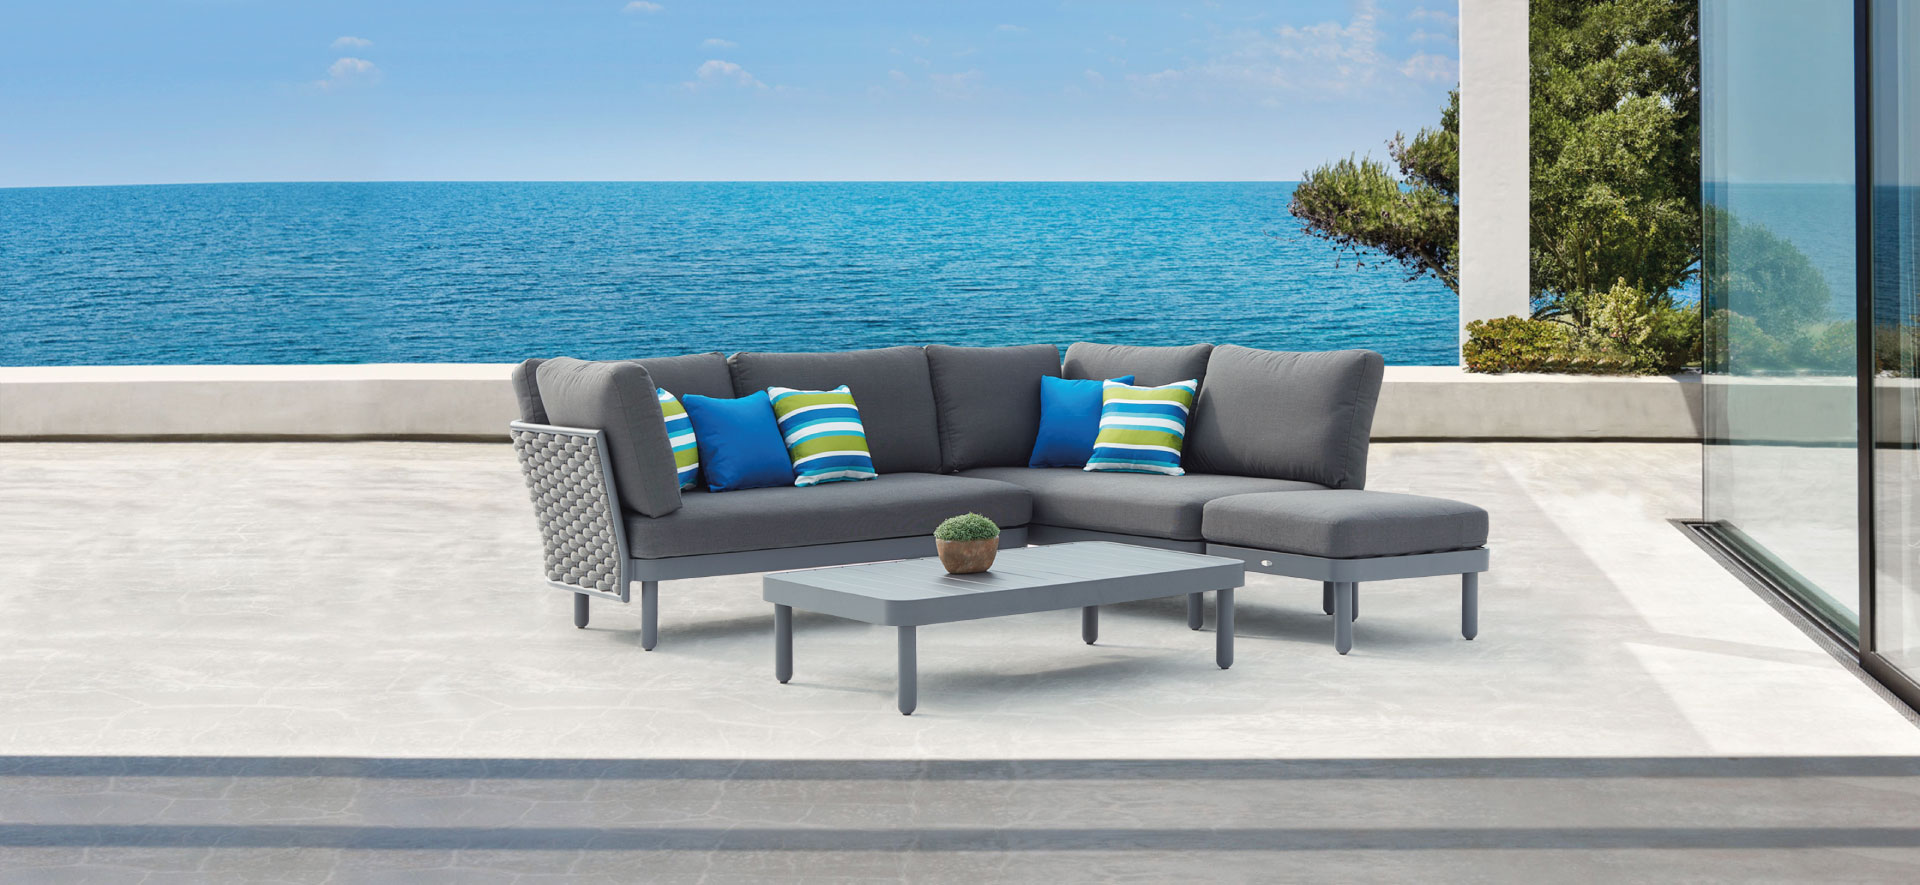 Milan Outdoor Furniture